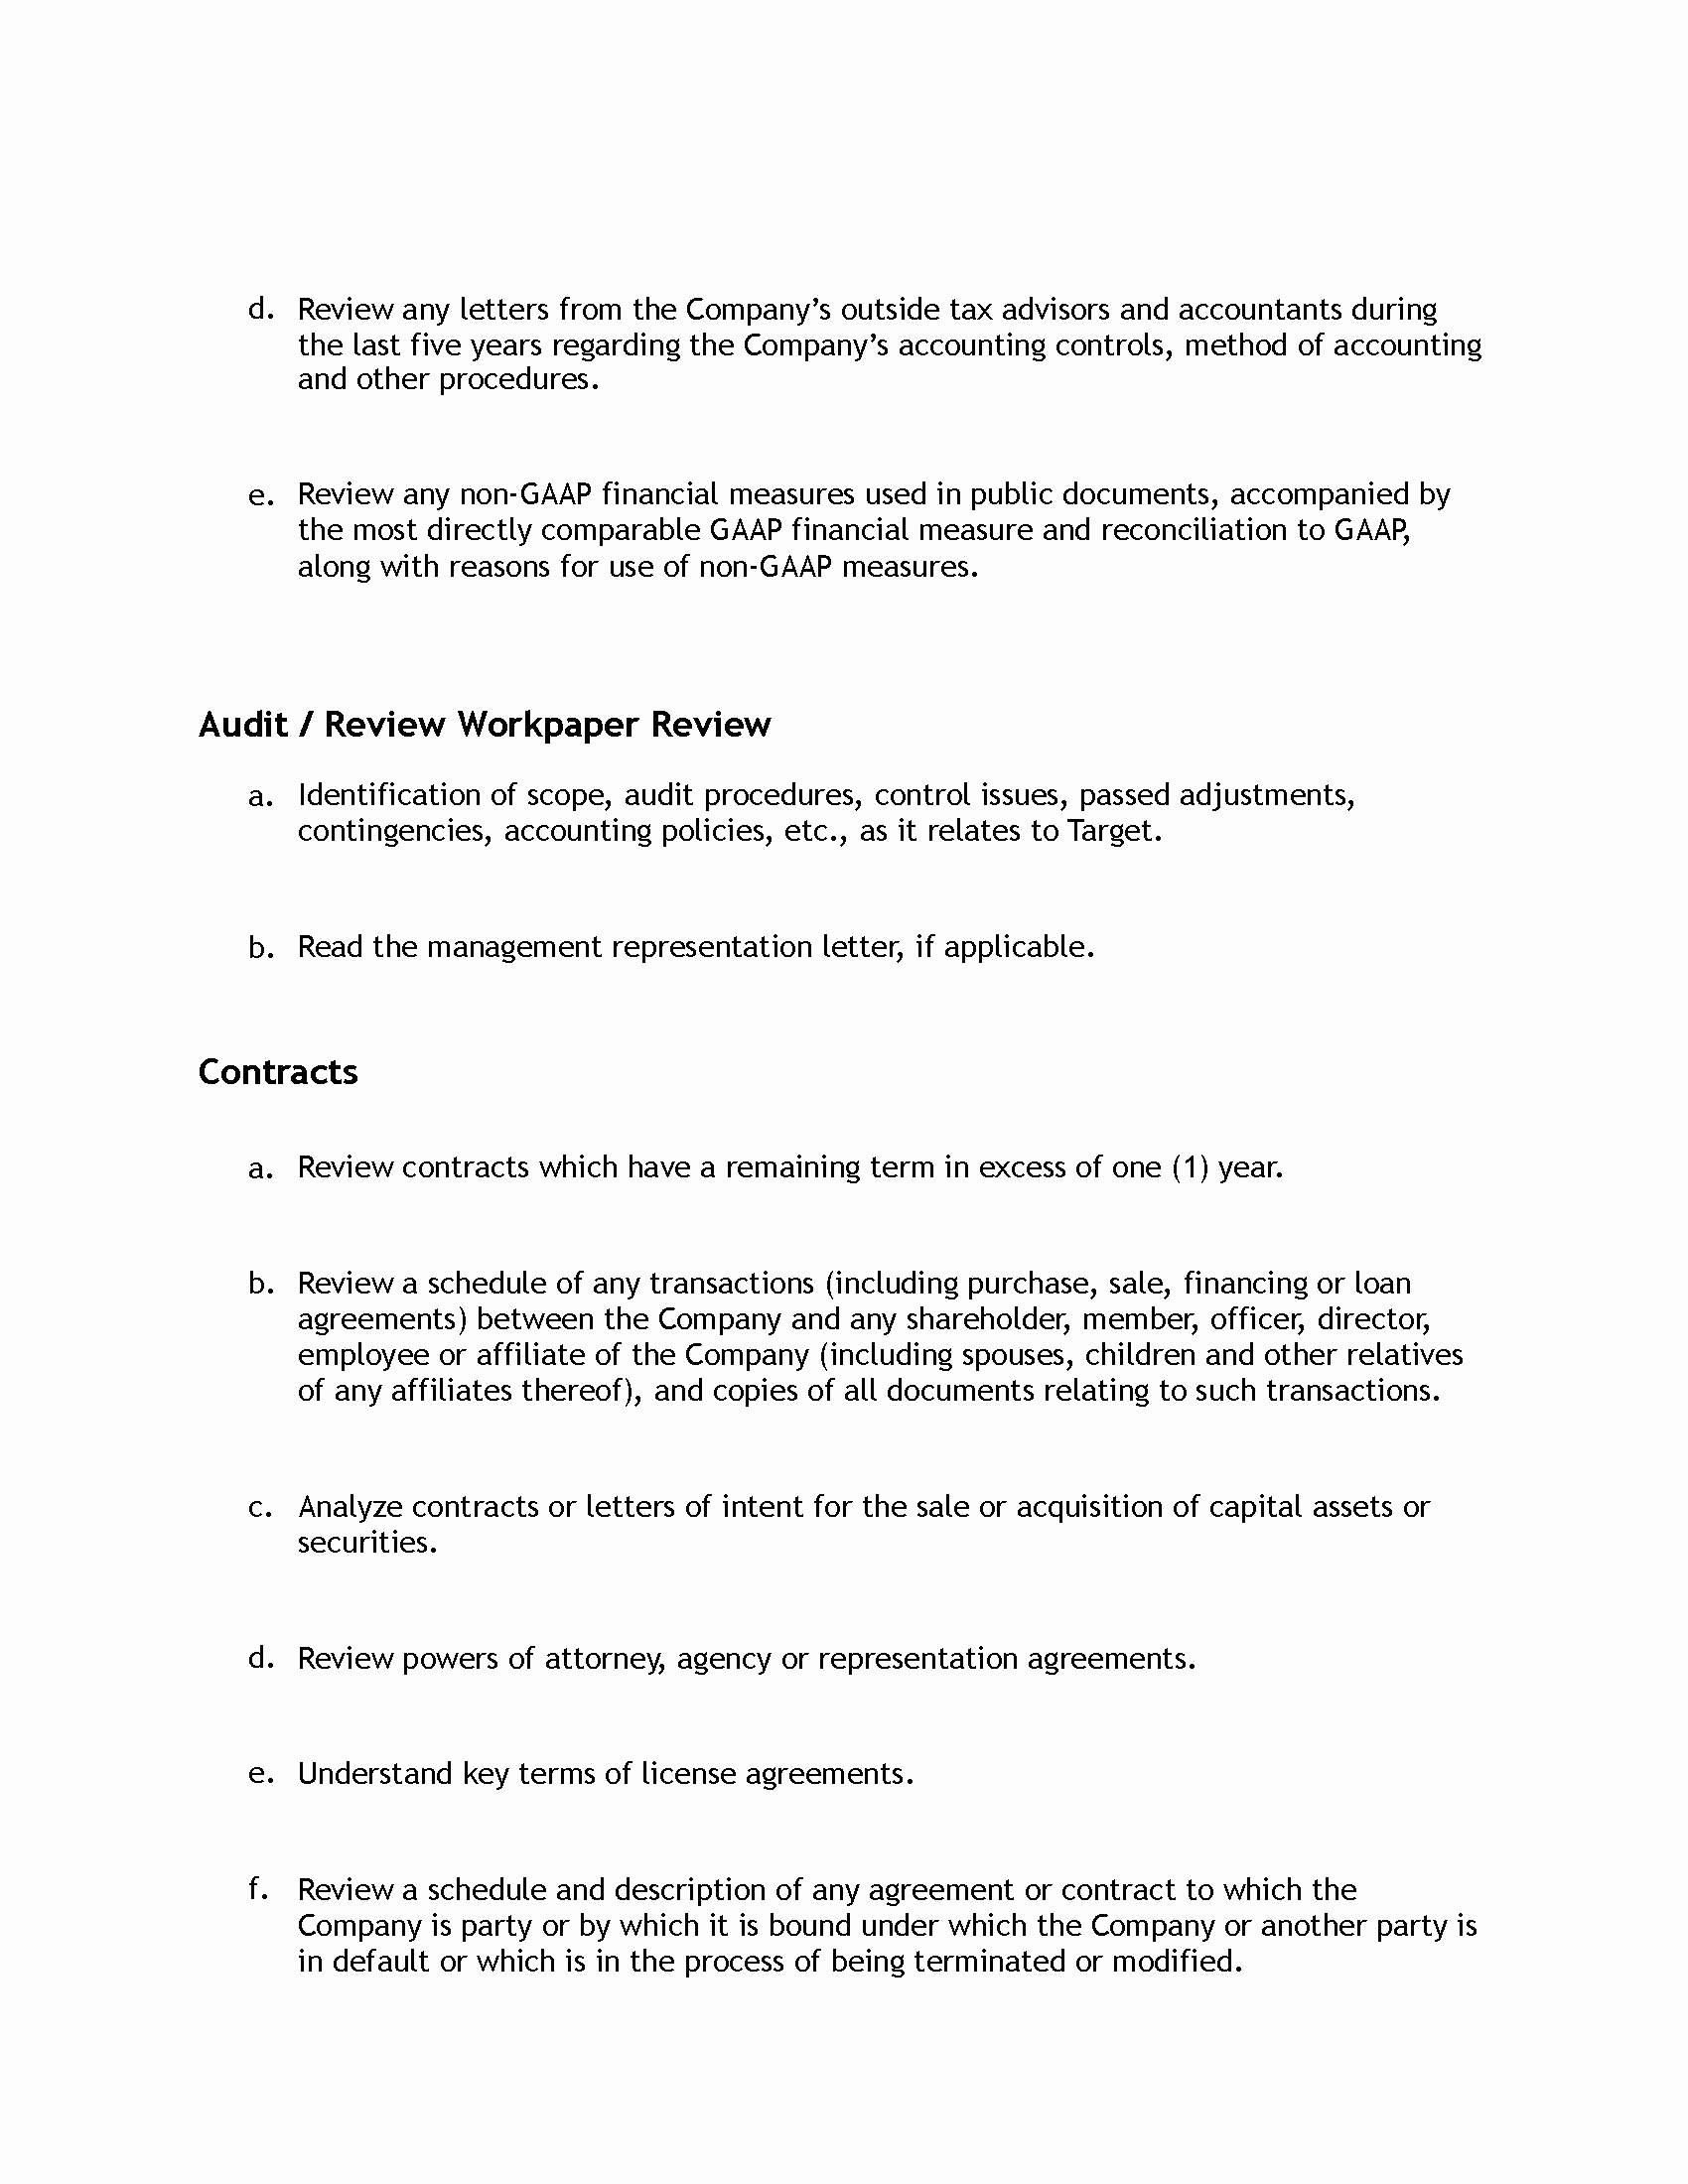 Secret Santa Letter Template - Audit Memo Template Fresh top Result 70 Awesome Secret Santa Email